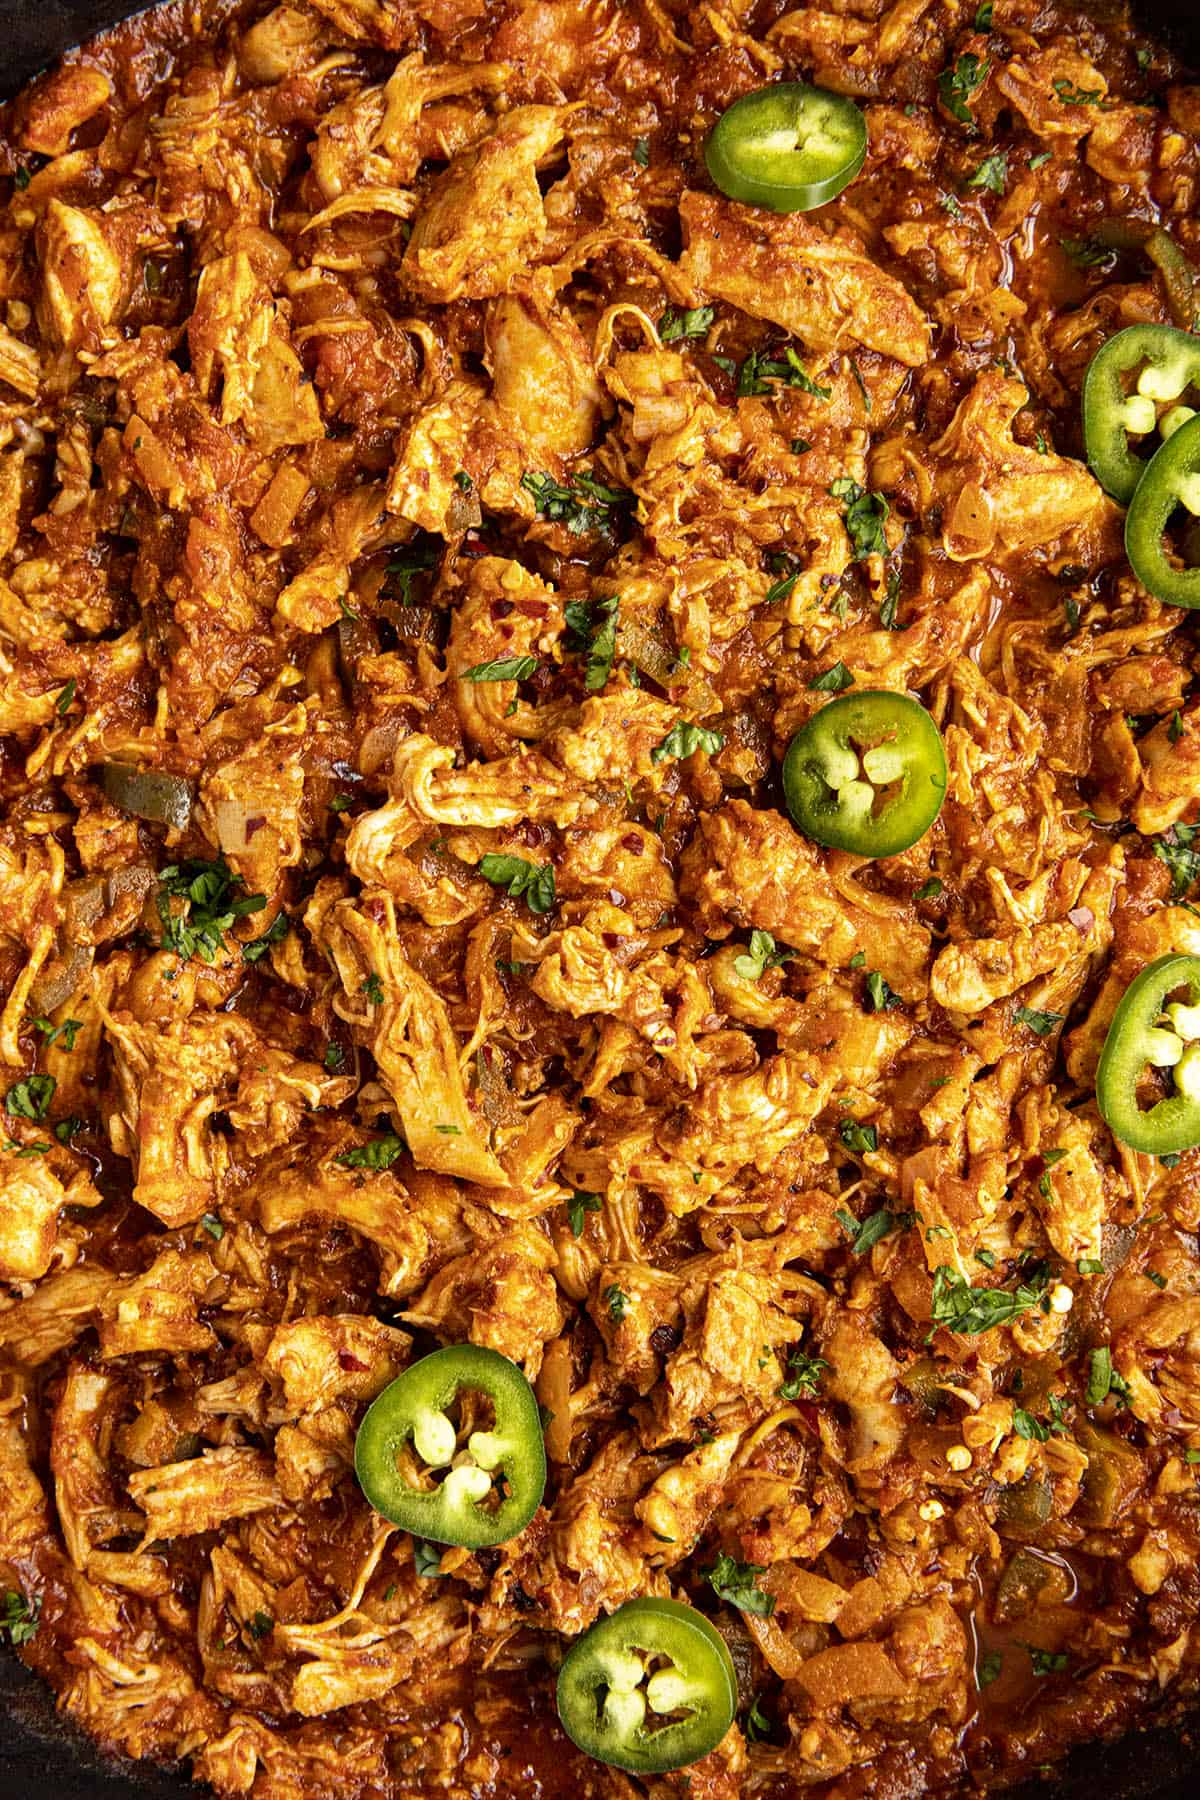 Spicy Chipotle Shredded Chicken (aka chicken tinga), in a pot